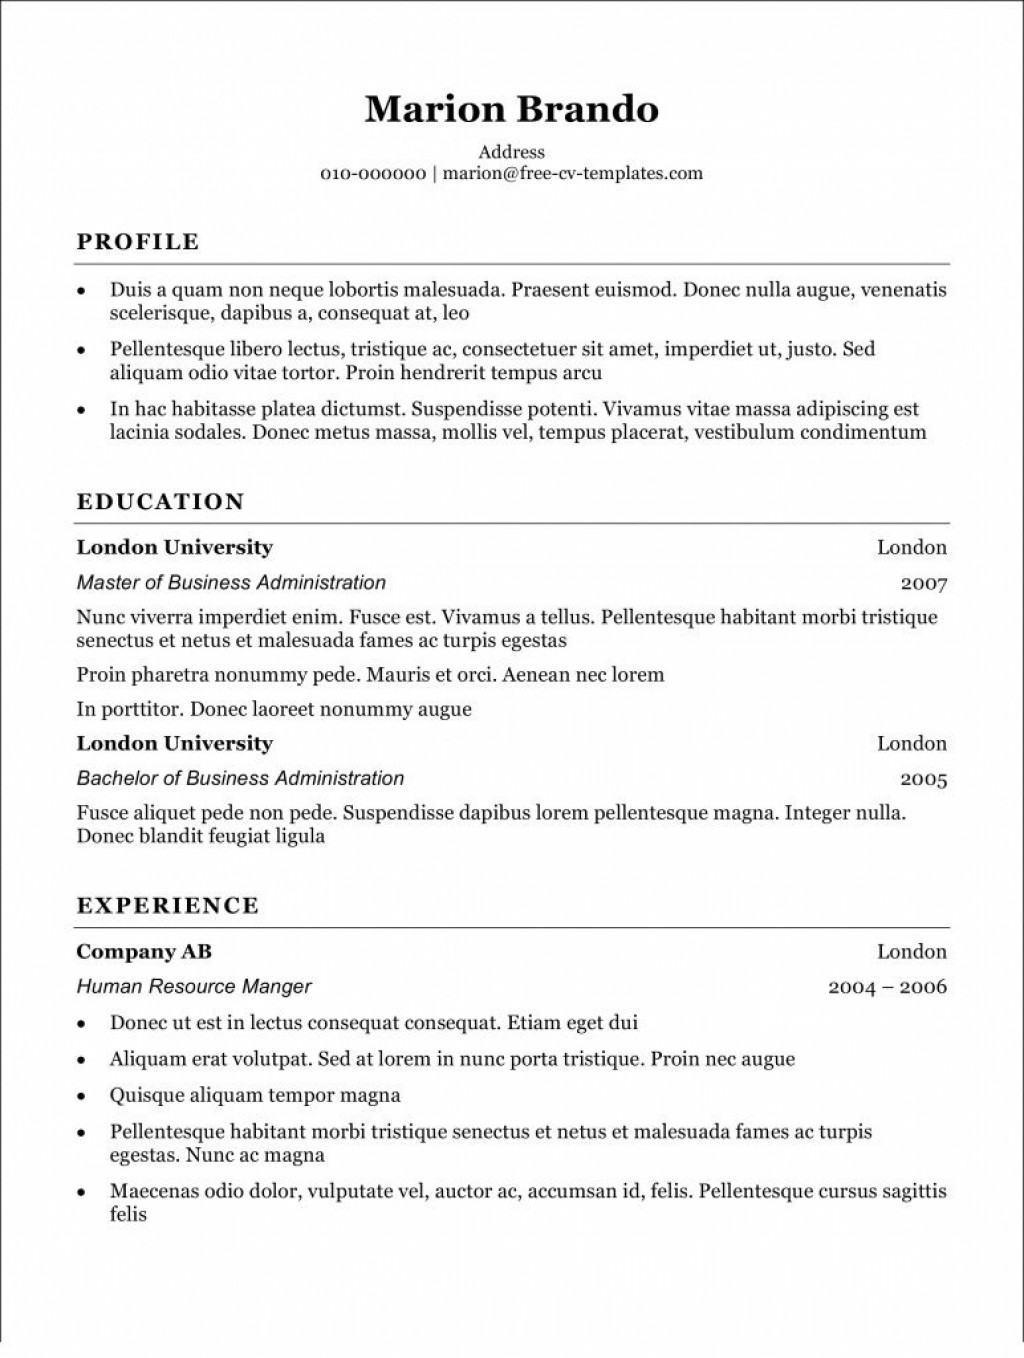 004 Rare Free Simple Resume Template Microsoft Word High Definition Large